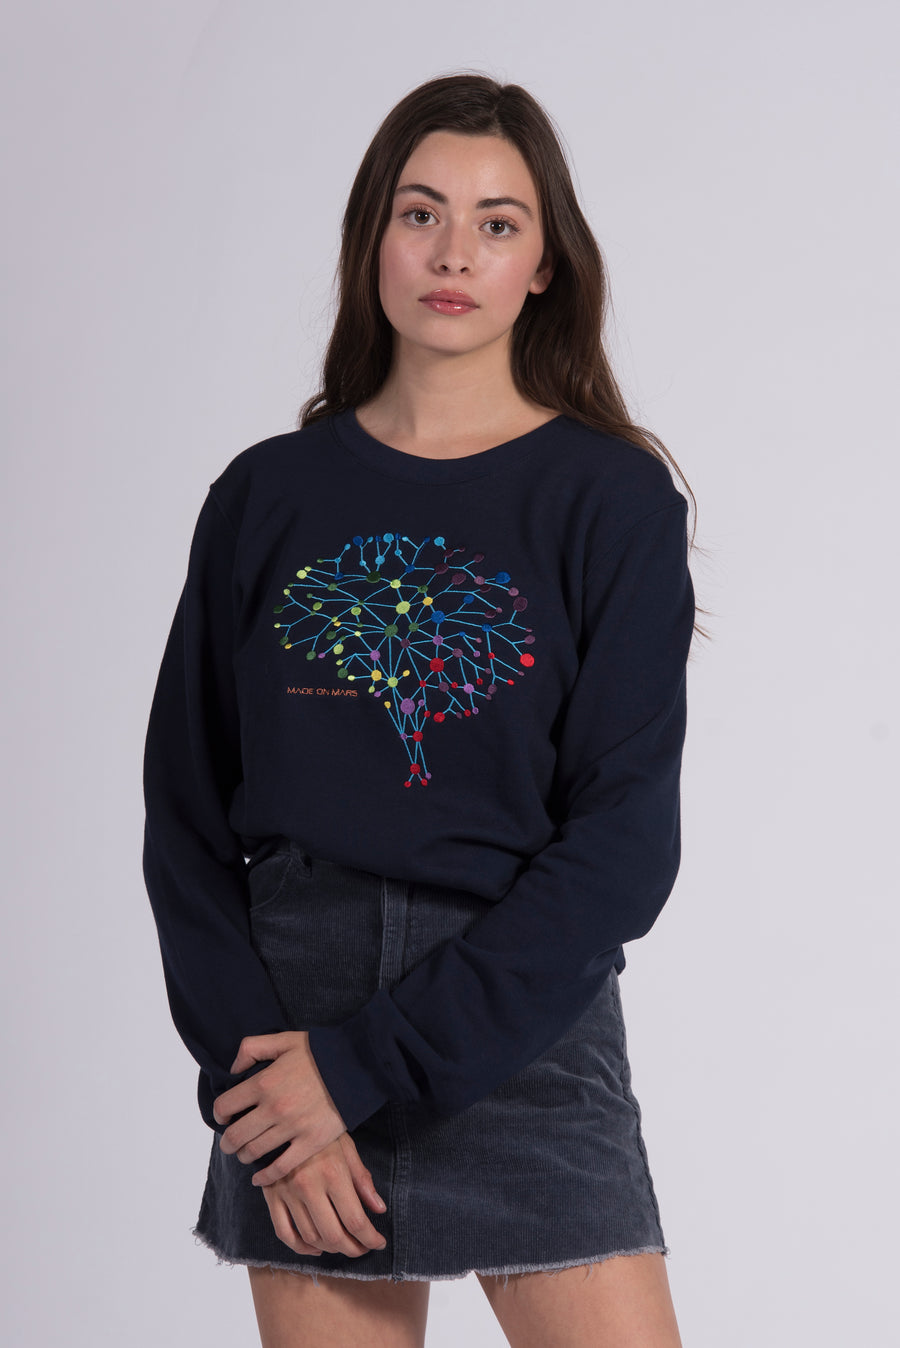 Colorful Neuro Embroidery Blue Cotton Women's Sweatshirt Sustainable